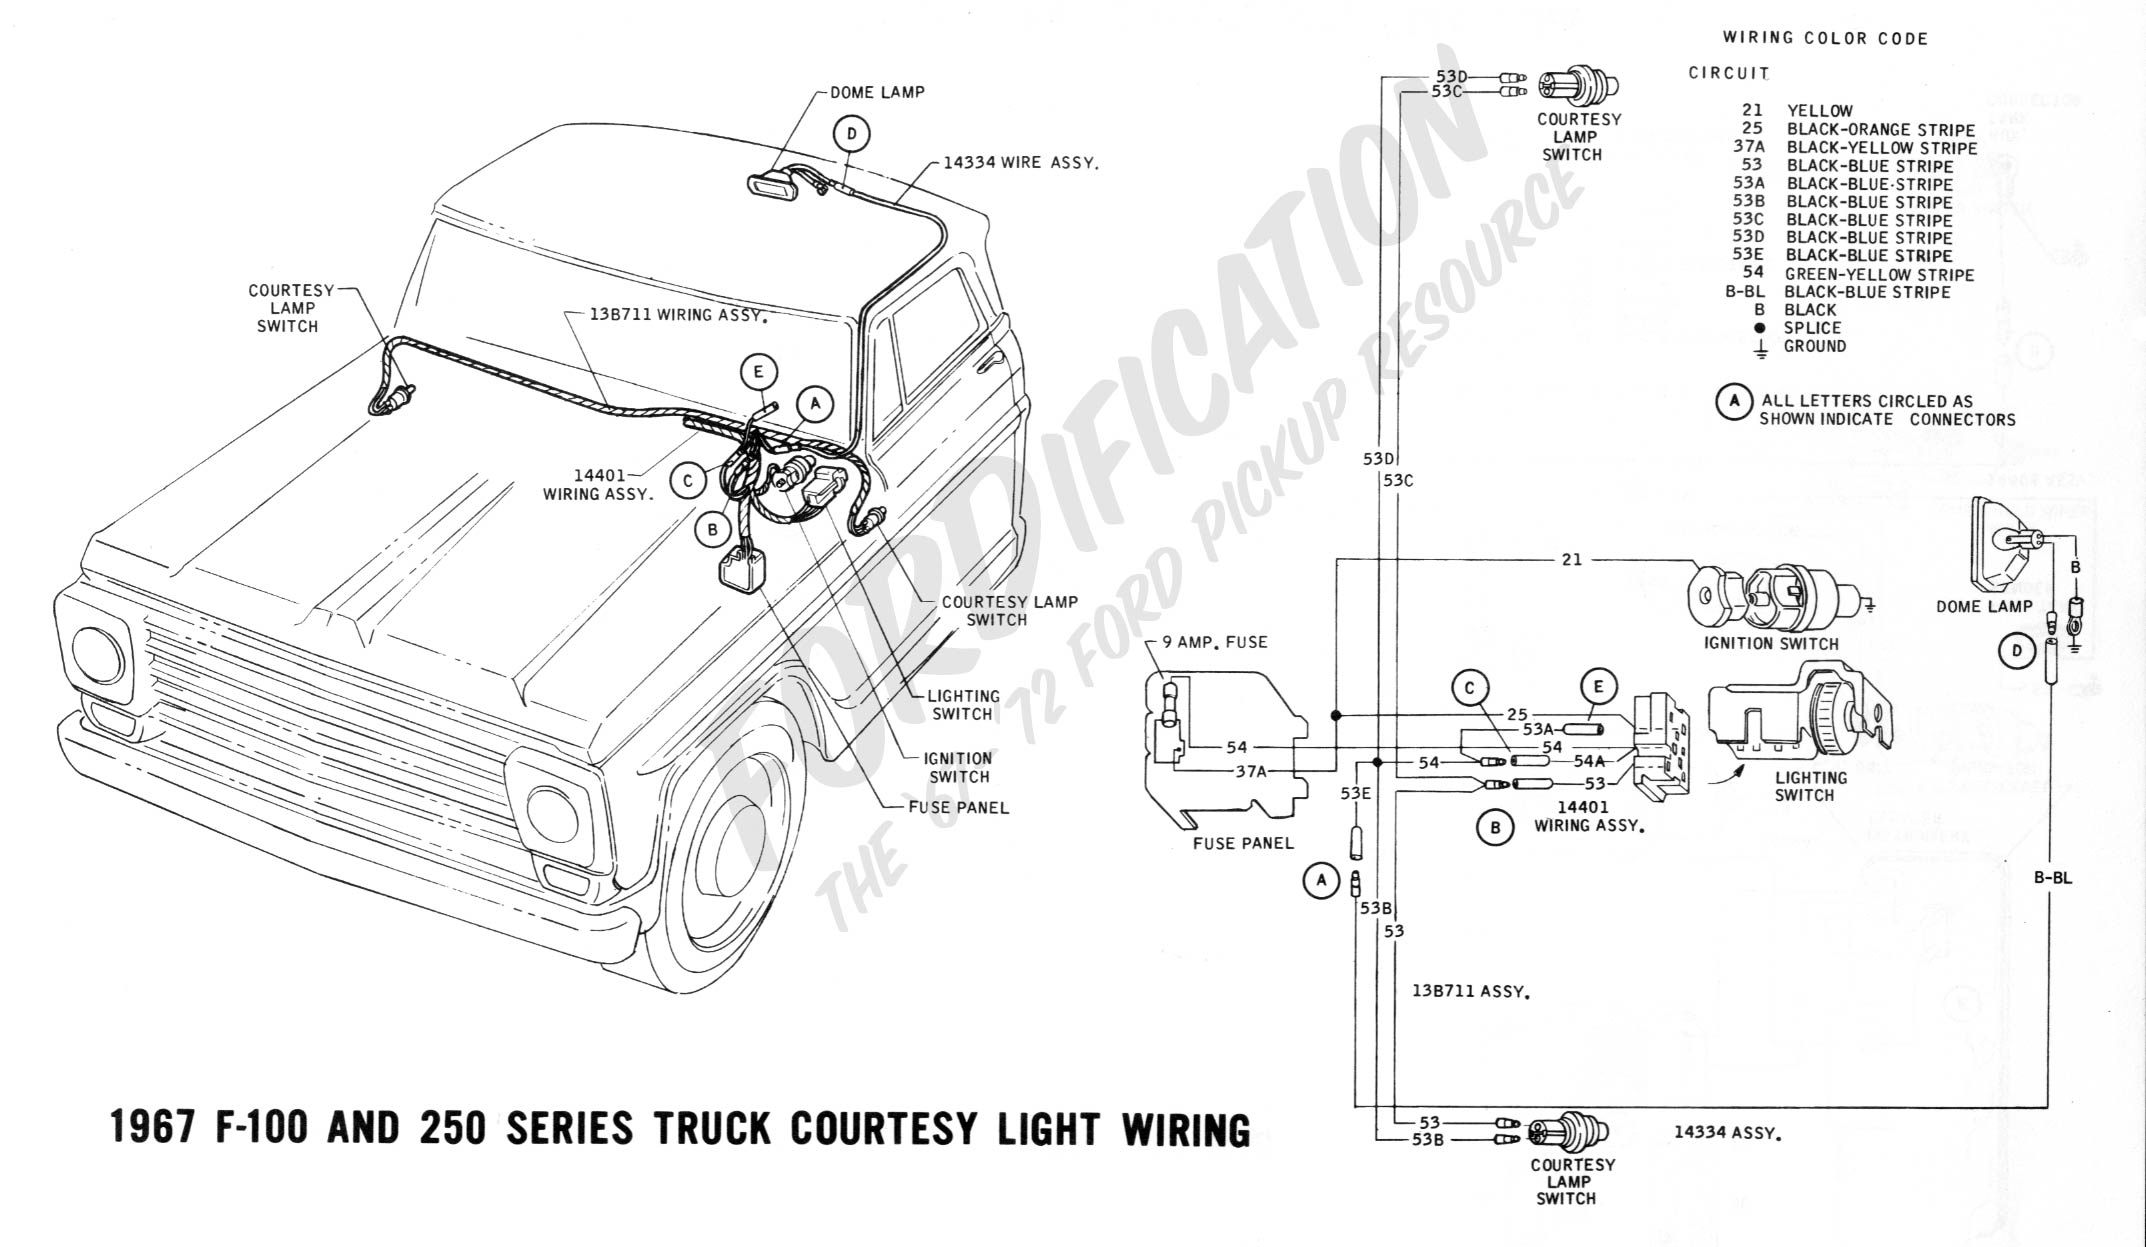 wiring 1967courtesylight ford truck technical drawings and schematics section h wiring Universal Wiper Motor Wiring Diagram at fashall.co